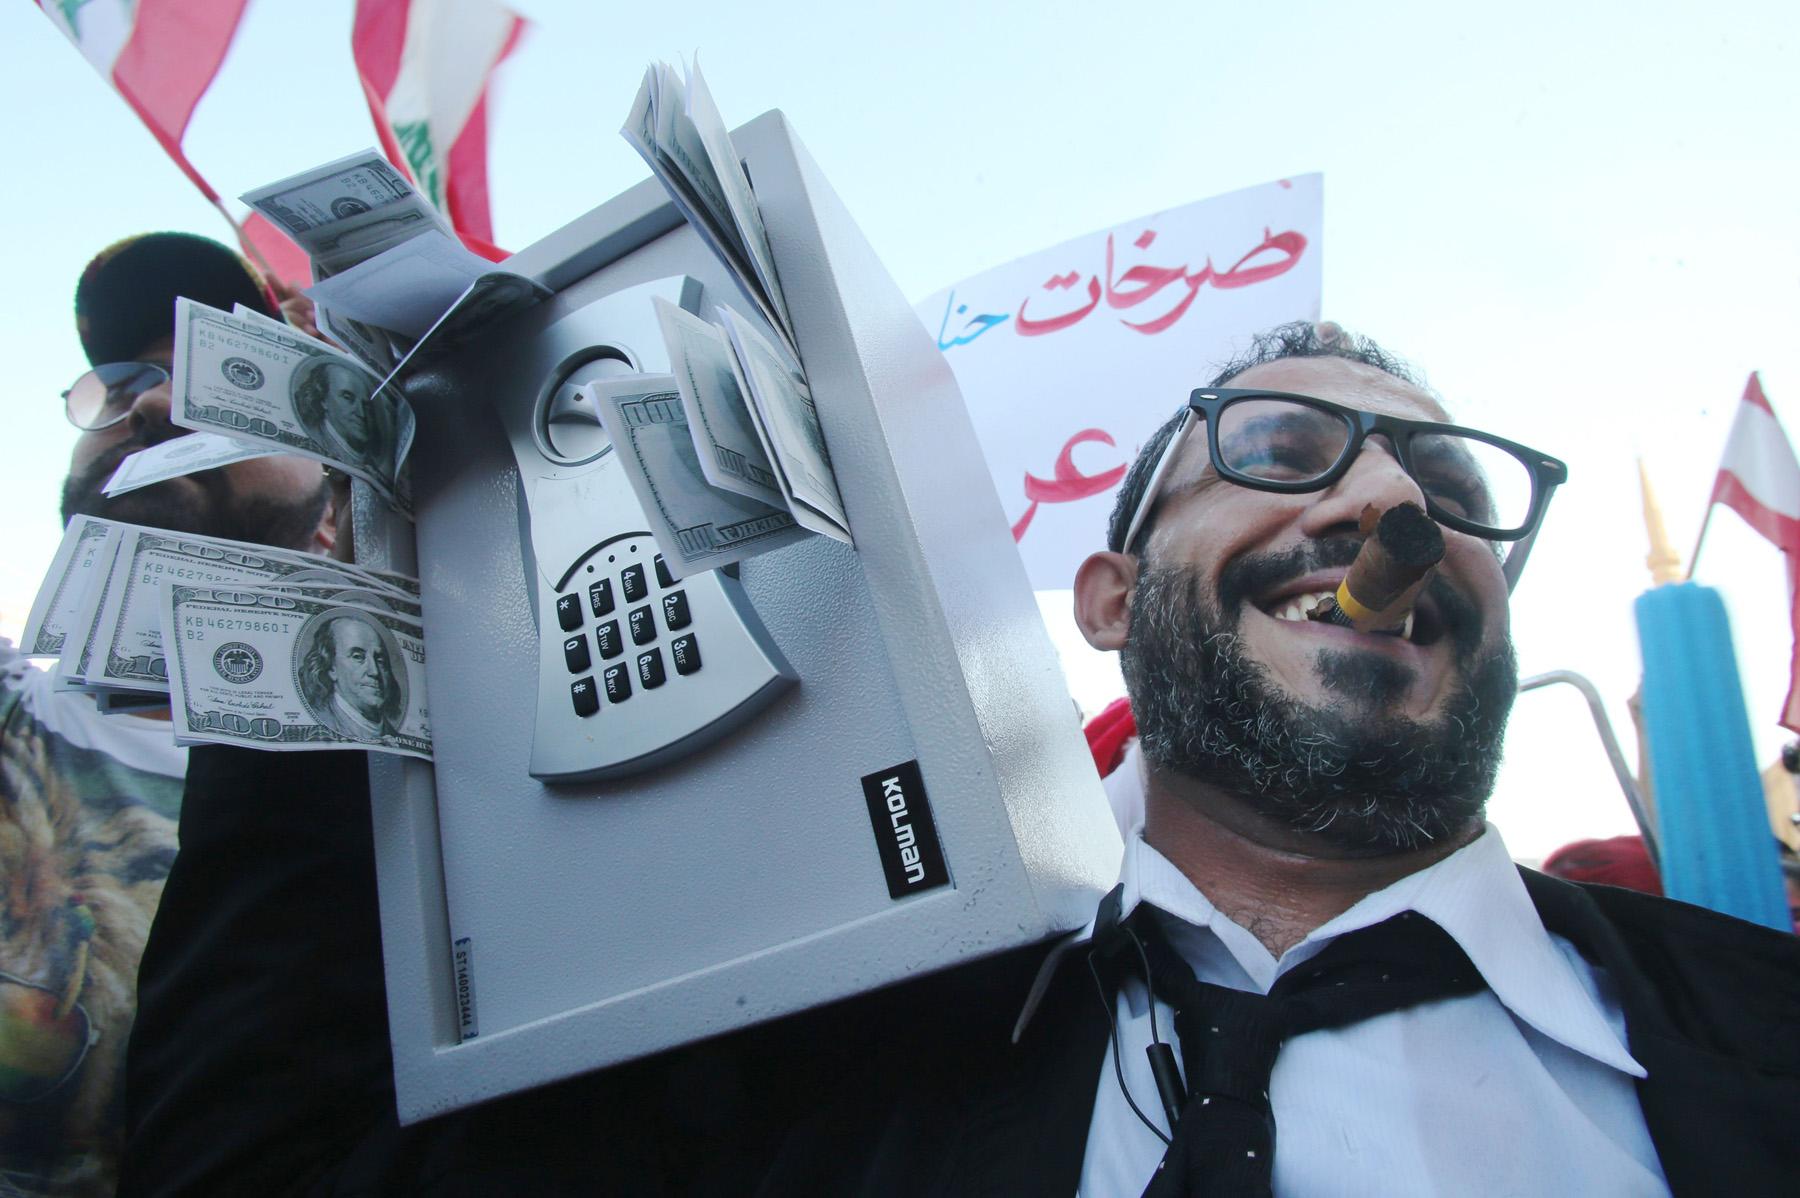 A file picture shows a Lebanese man holding a safe during a mass rally against corrupt politicians at the iconic Martyrs Square in Beirut. (AFP)